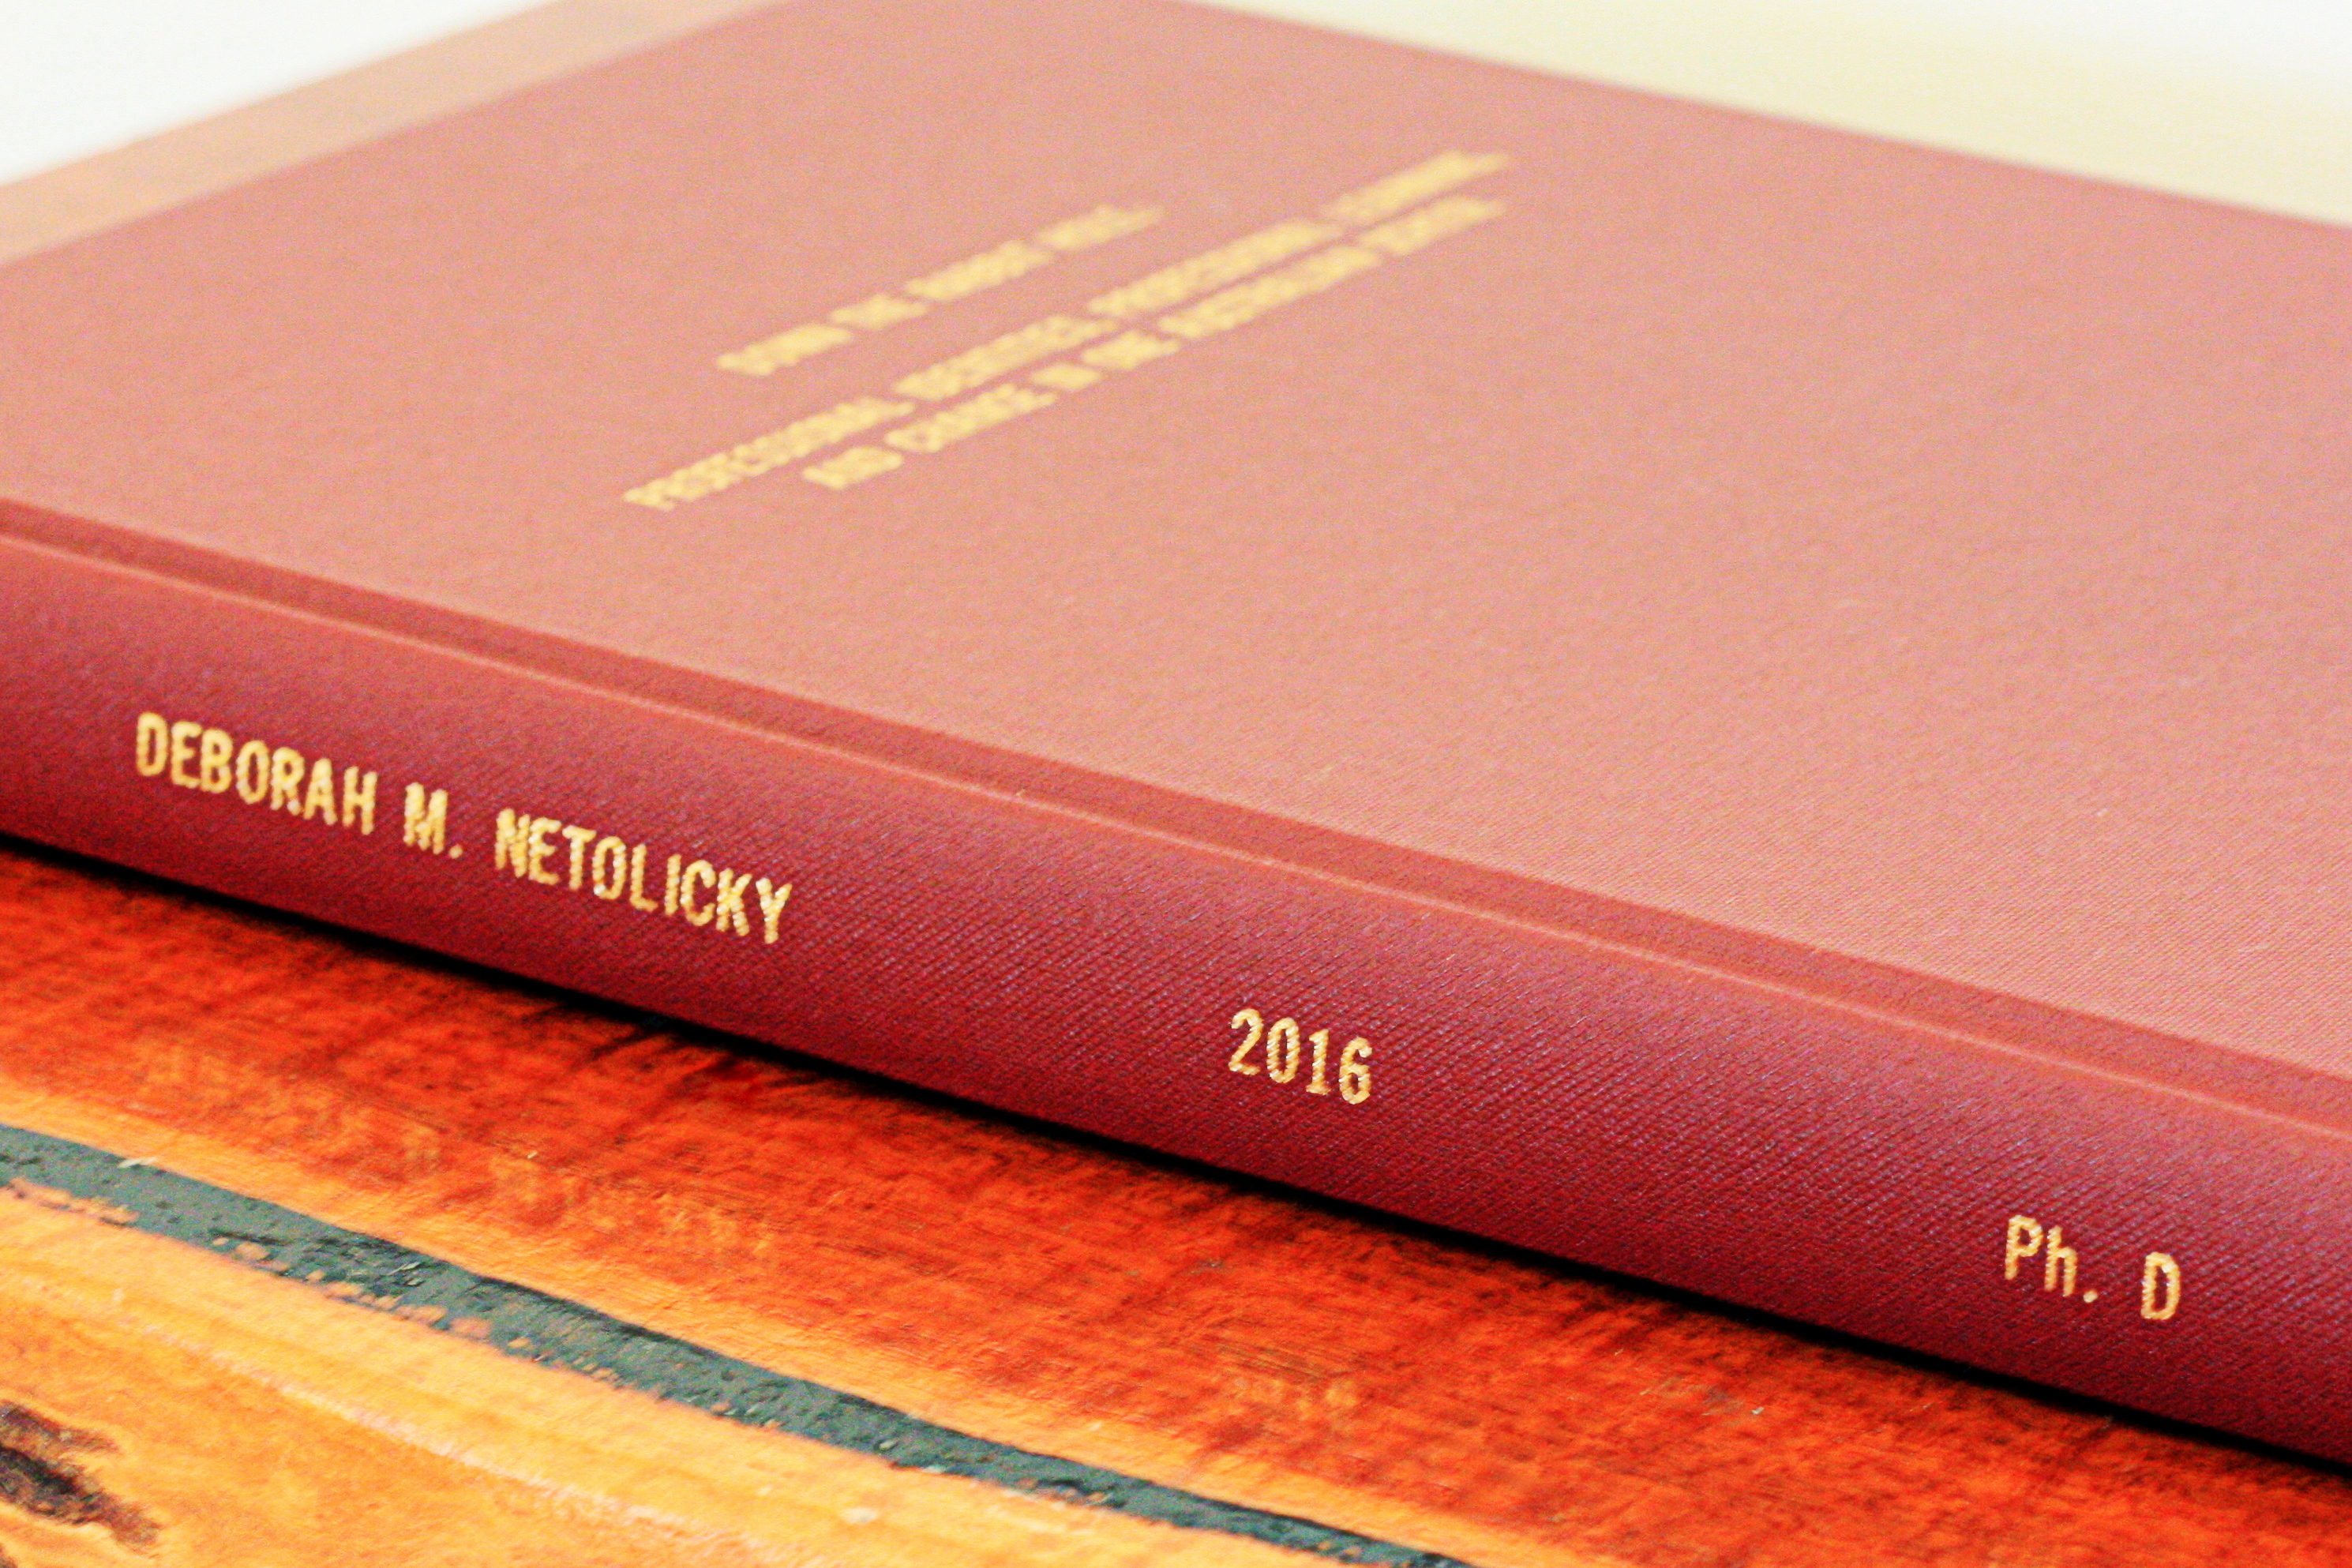 phd thesis book